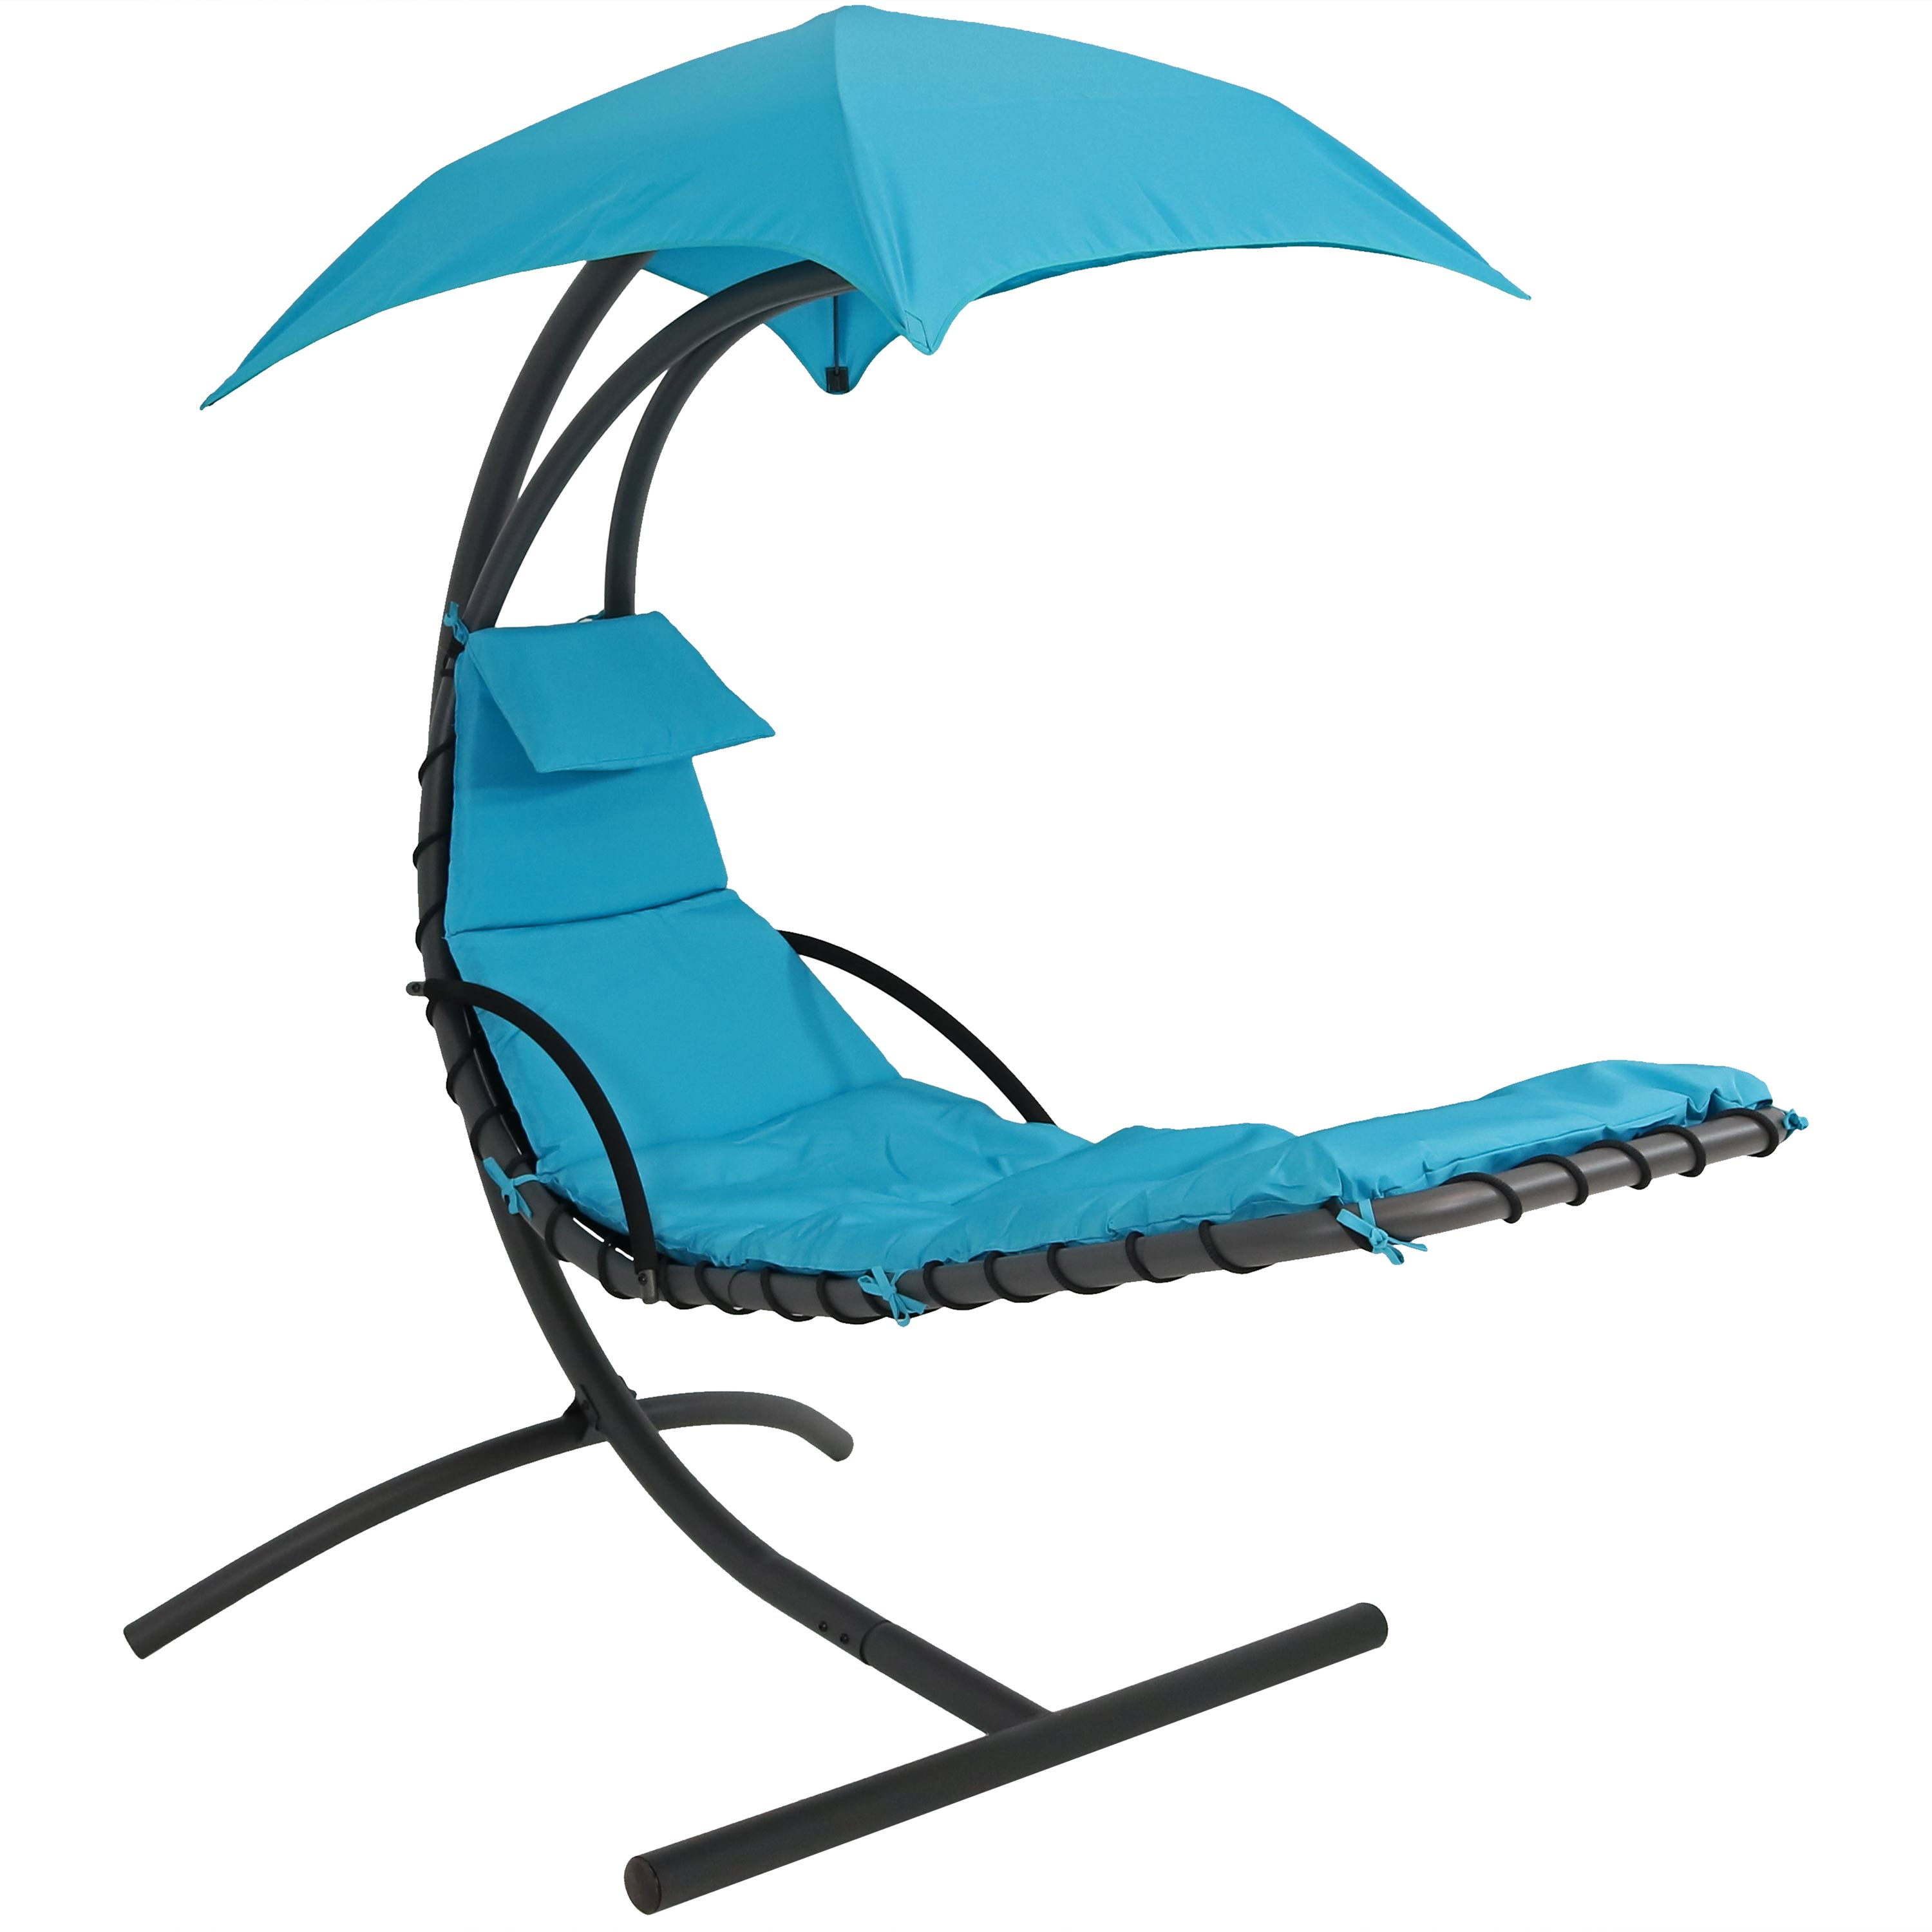 Floating Chaise Lounger Hanging Hammock Patio Swing Chair Canopy Arc Stand Teal Photo